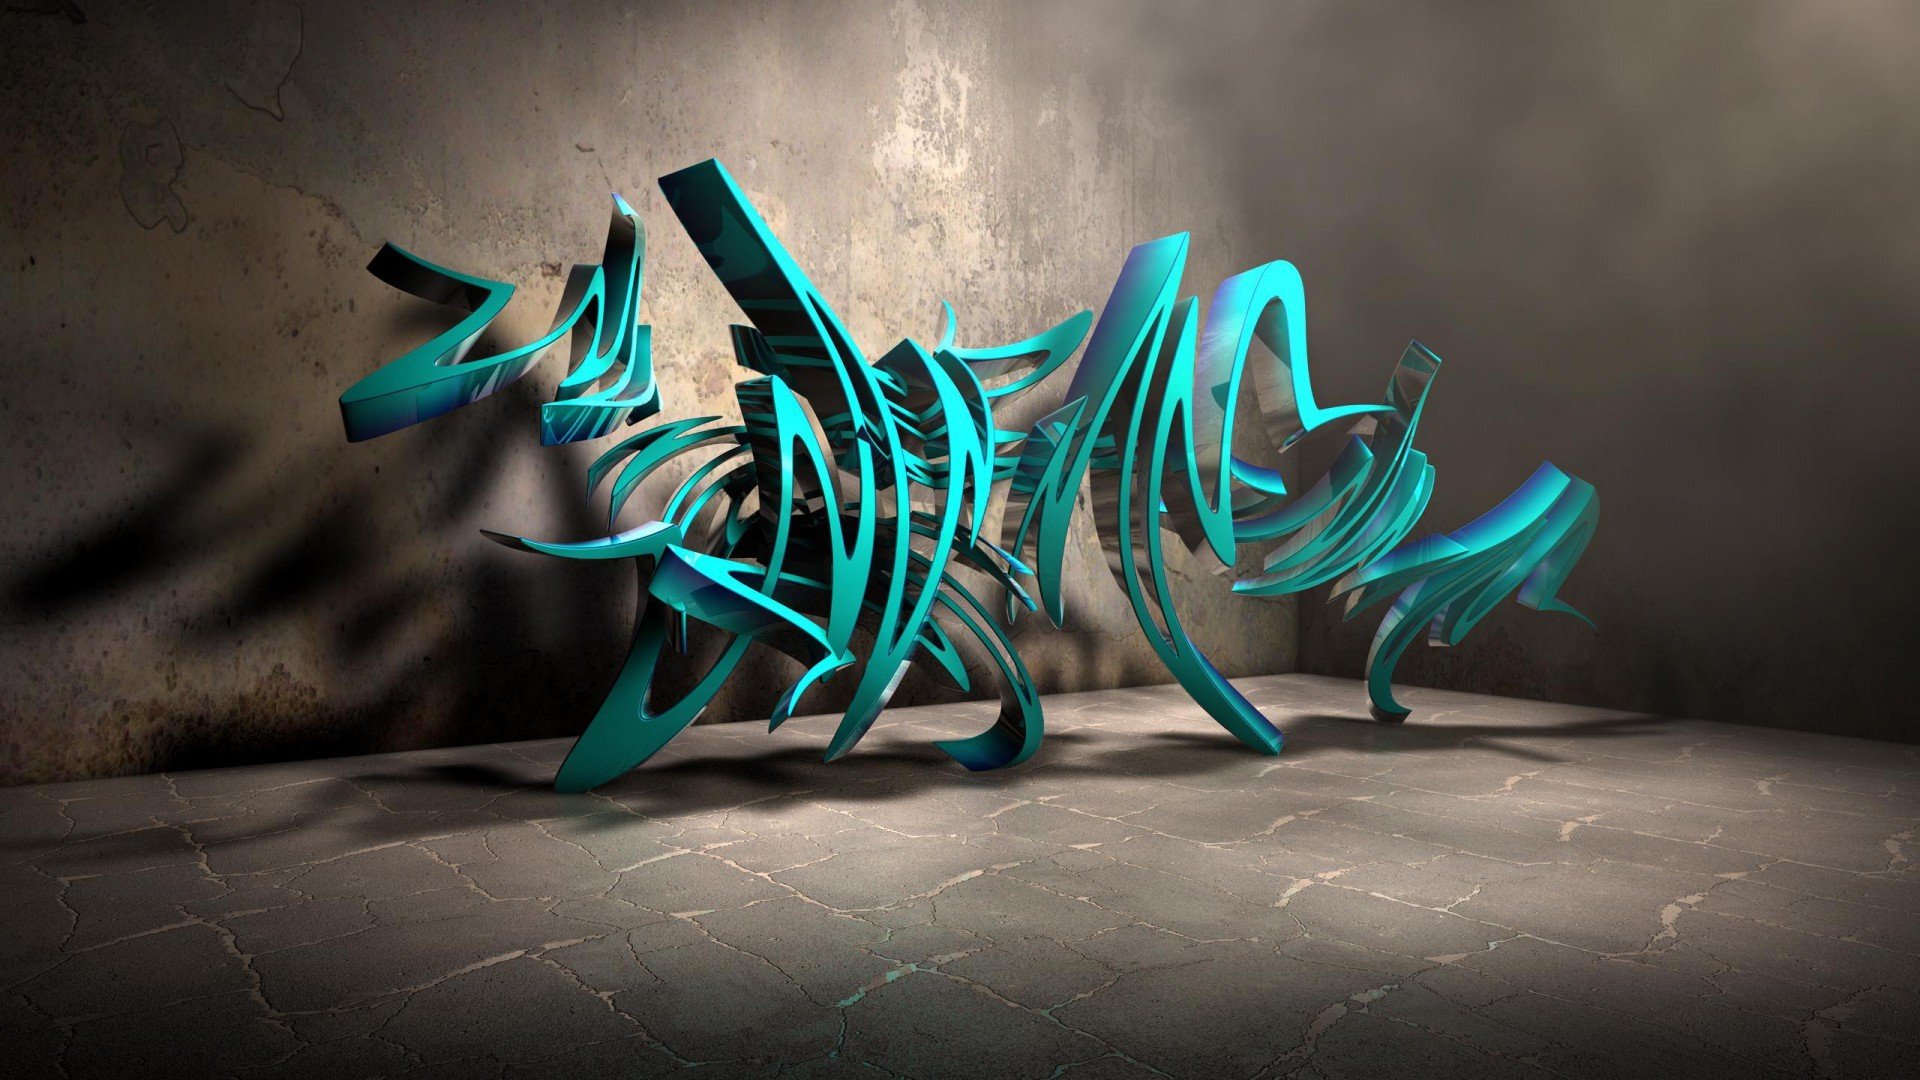 HD Graffiti Wallpapers Wallpaper 1920×1080 Graffiti HD Backgrounds (41  Wallpapers) | Adorable